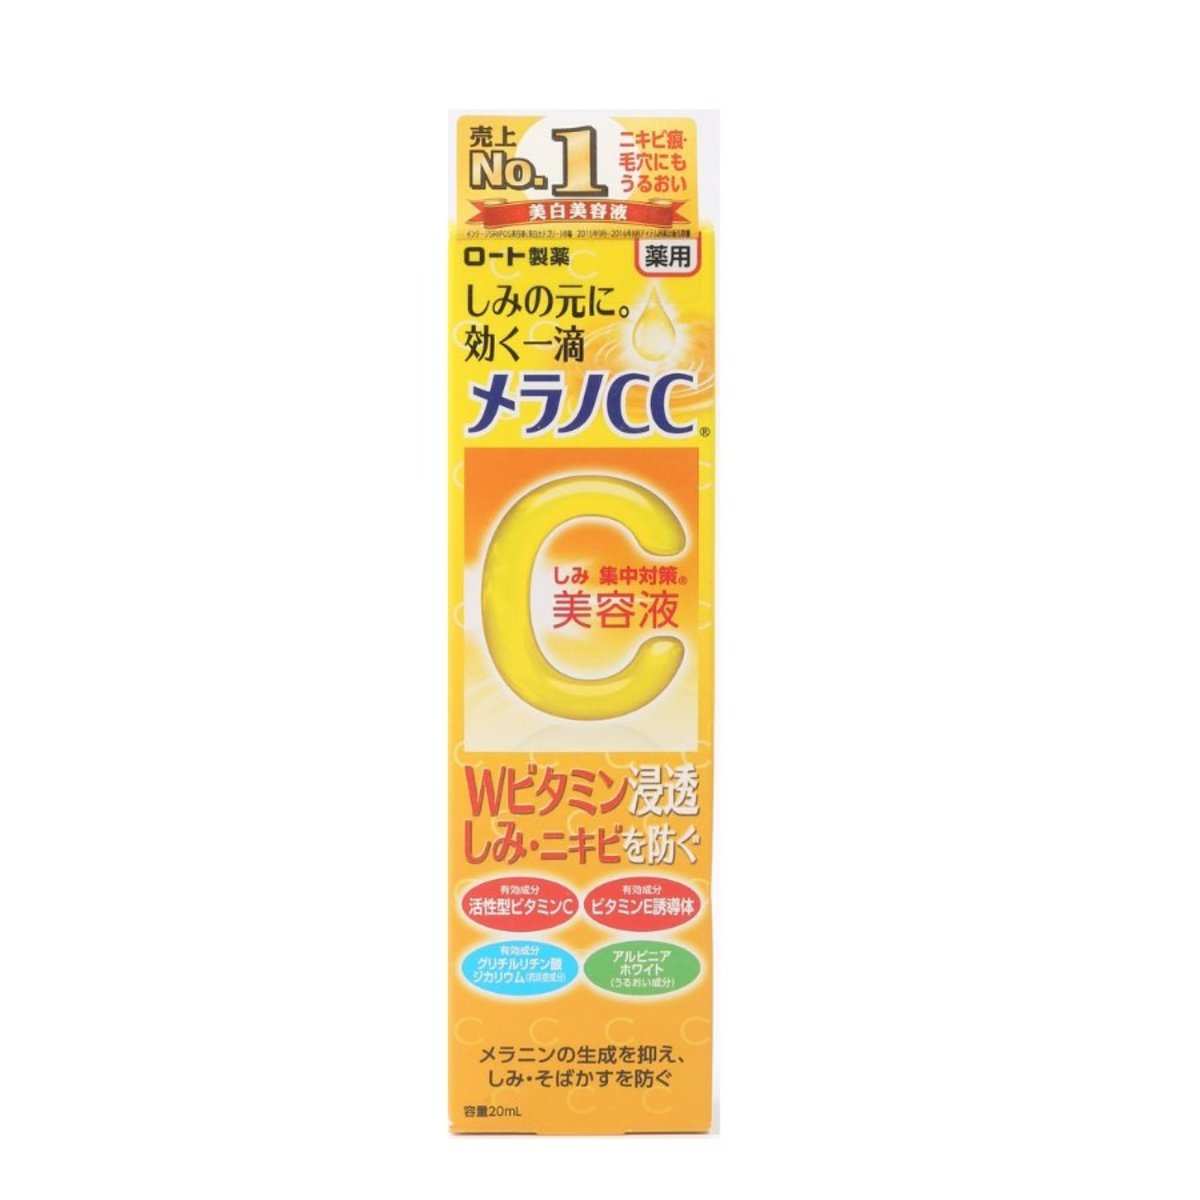 Melano CC-  Medicinal Stains Intensive Measures Essence 20ml (4987241135011 )   [Parallel Import Product]